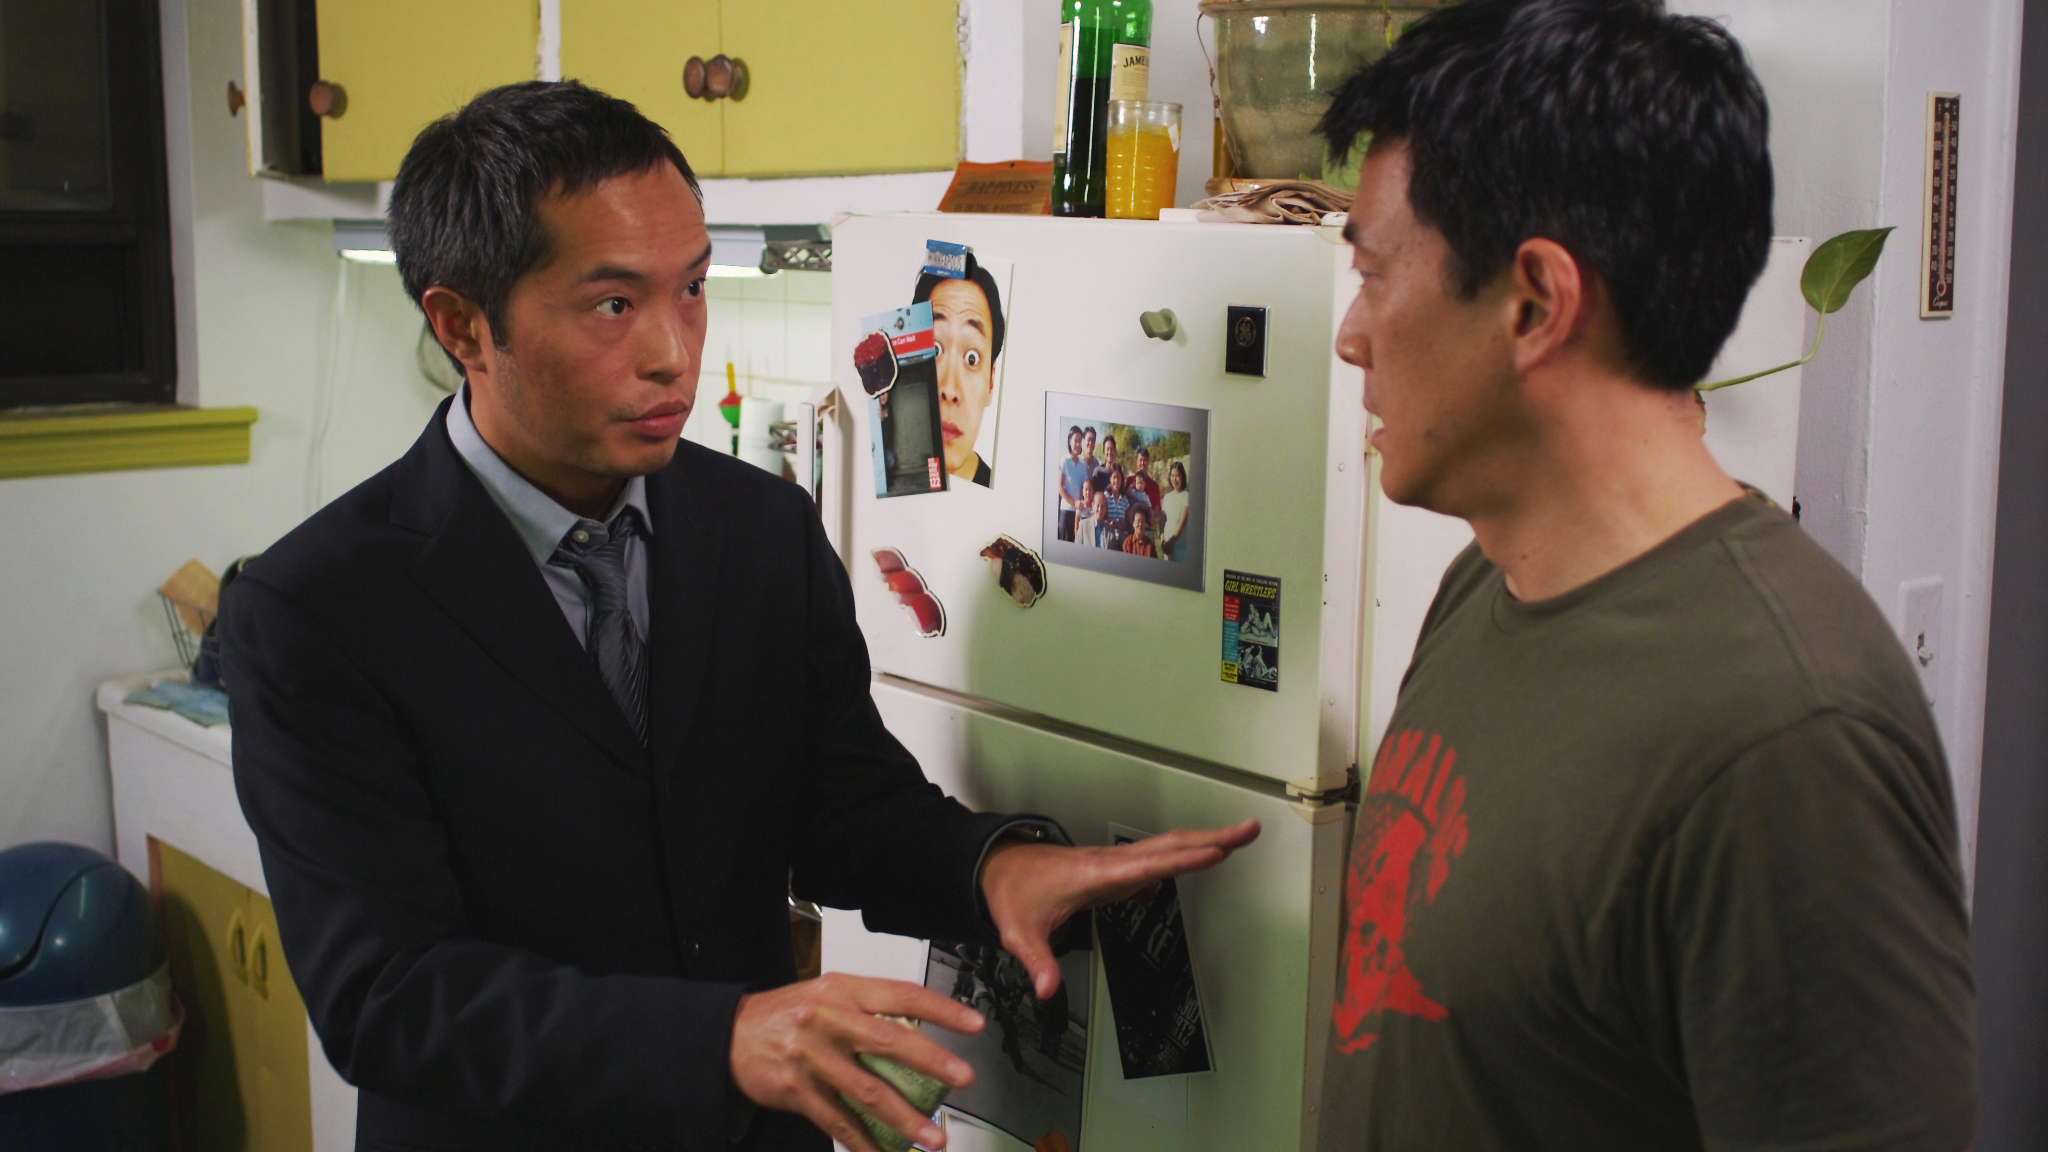 Ken Leung and Paul Juhn in Works of Art; Written by Paul Juhn; Cinematographer - Ramsey Fendall; Director - Andrew Pang